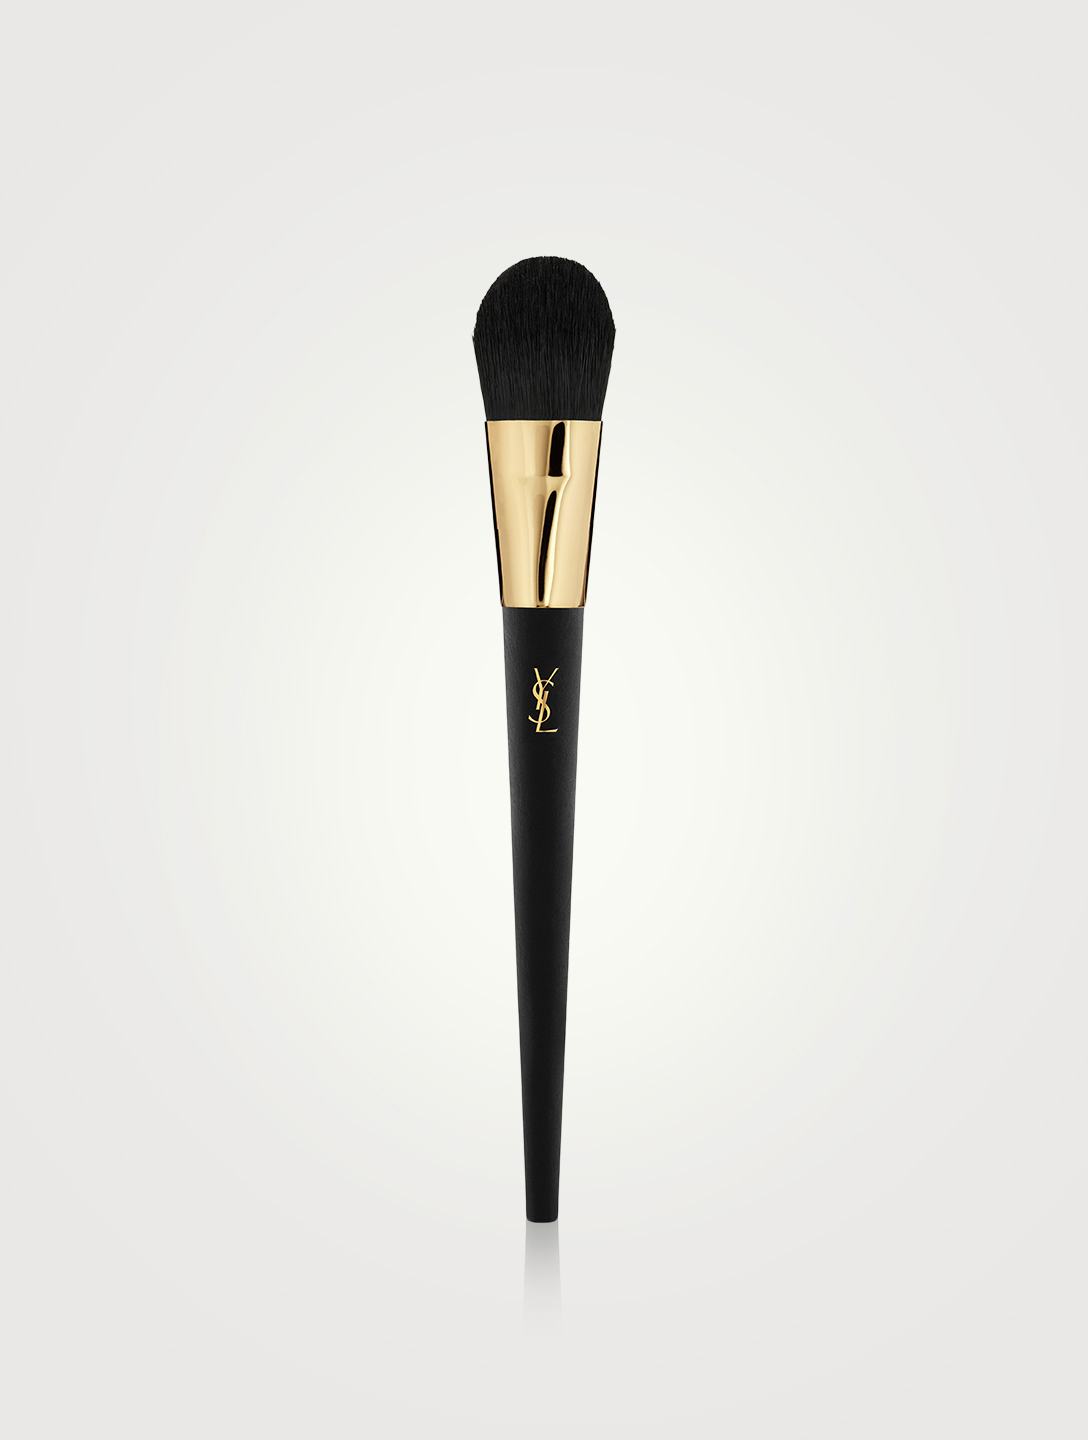 YVES SAINT LAURENT Foundation Brush No 1 Beauty